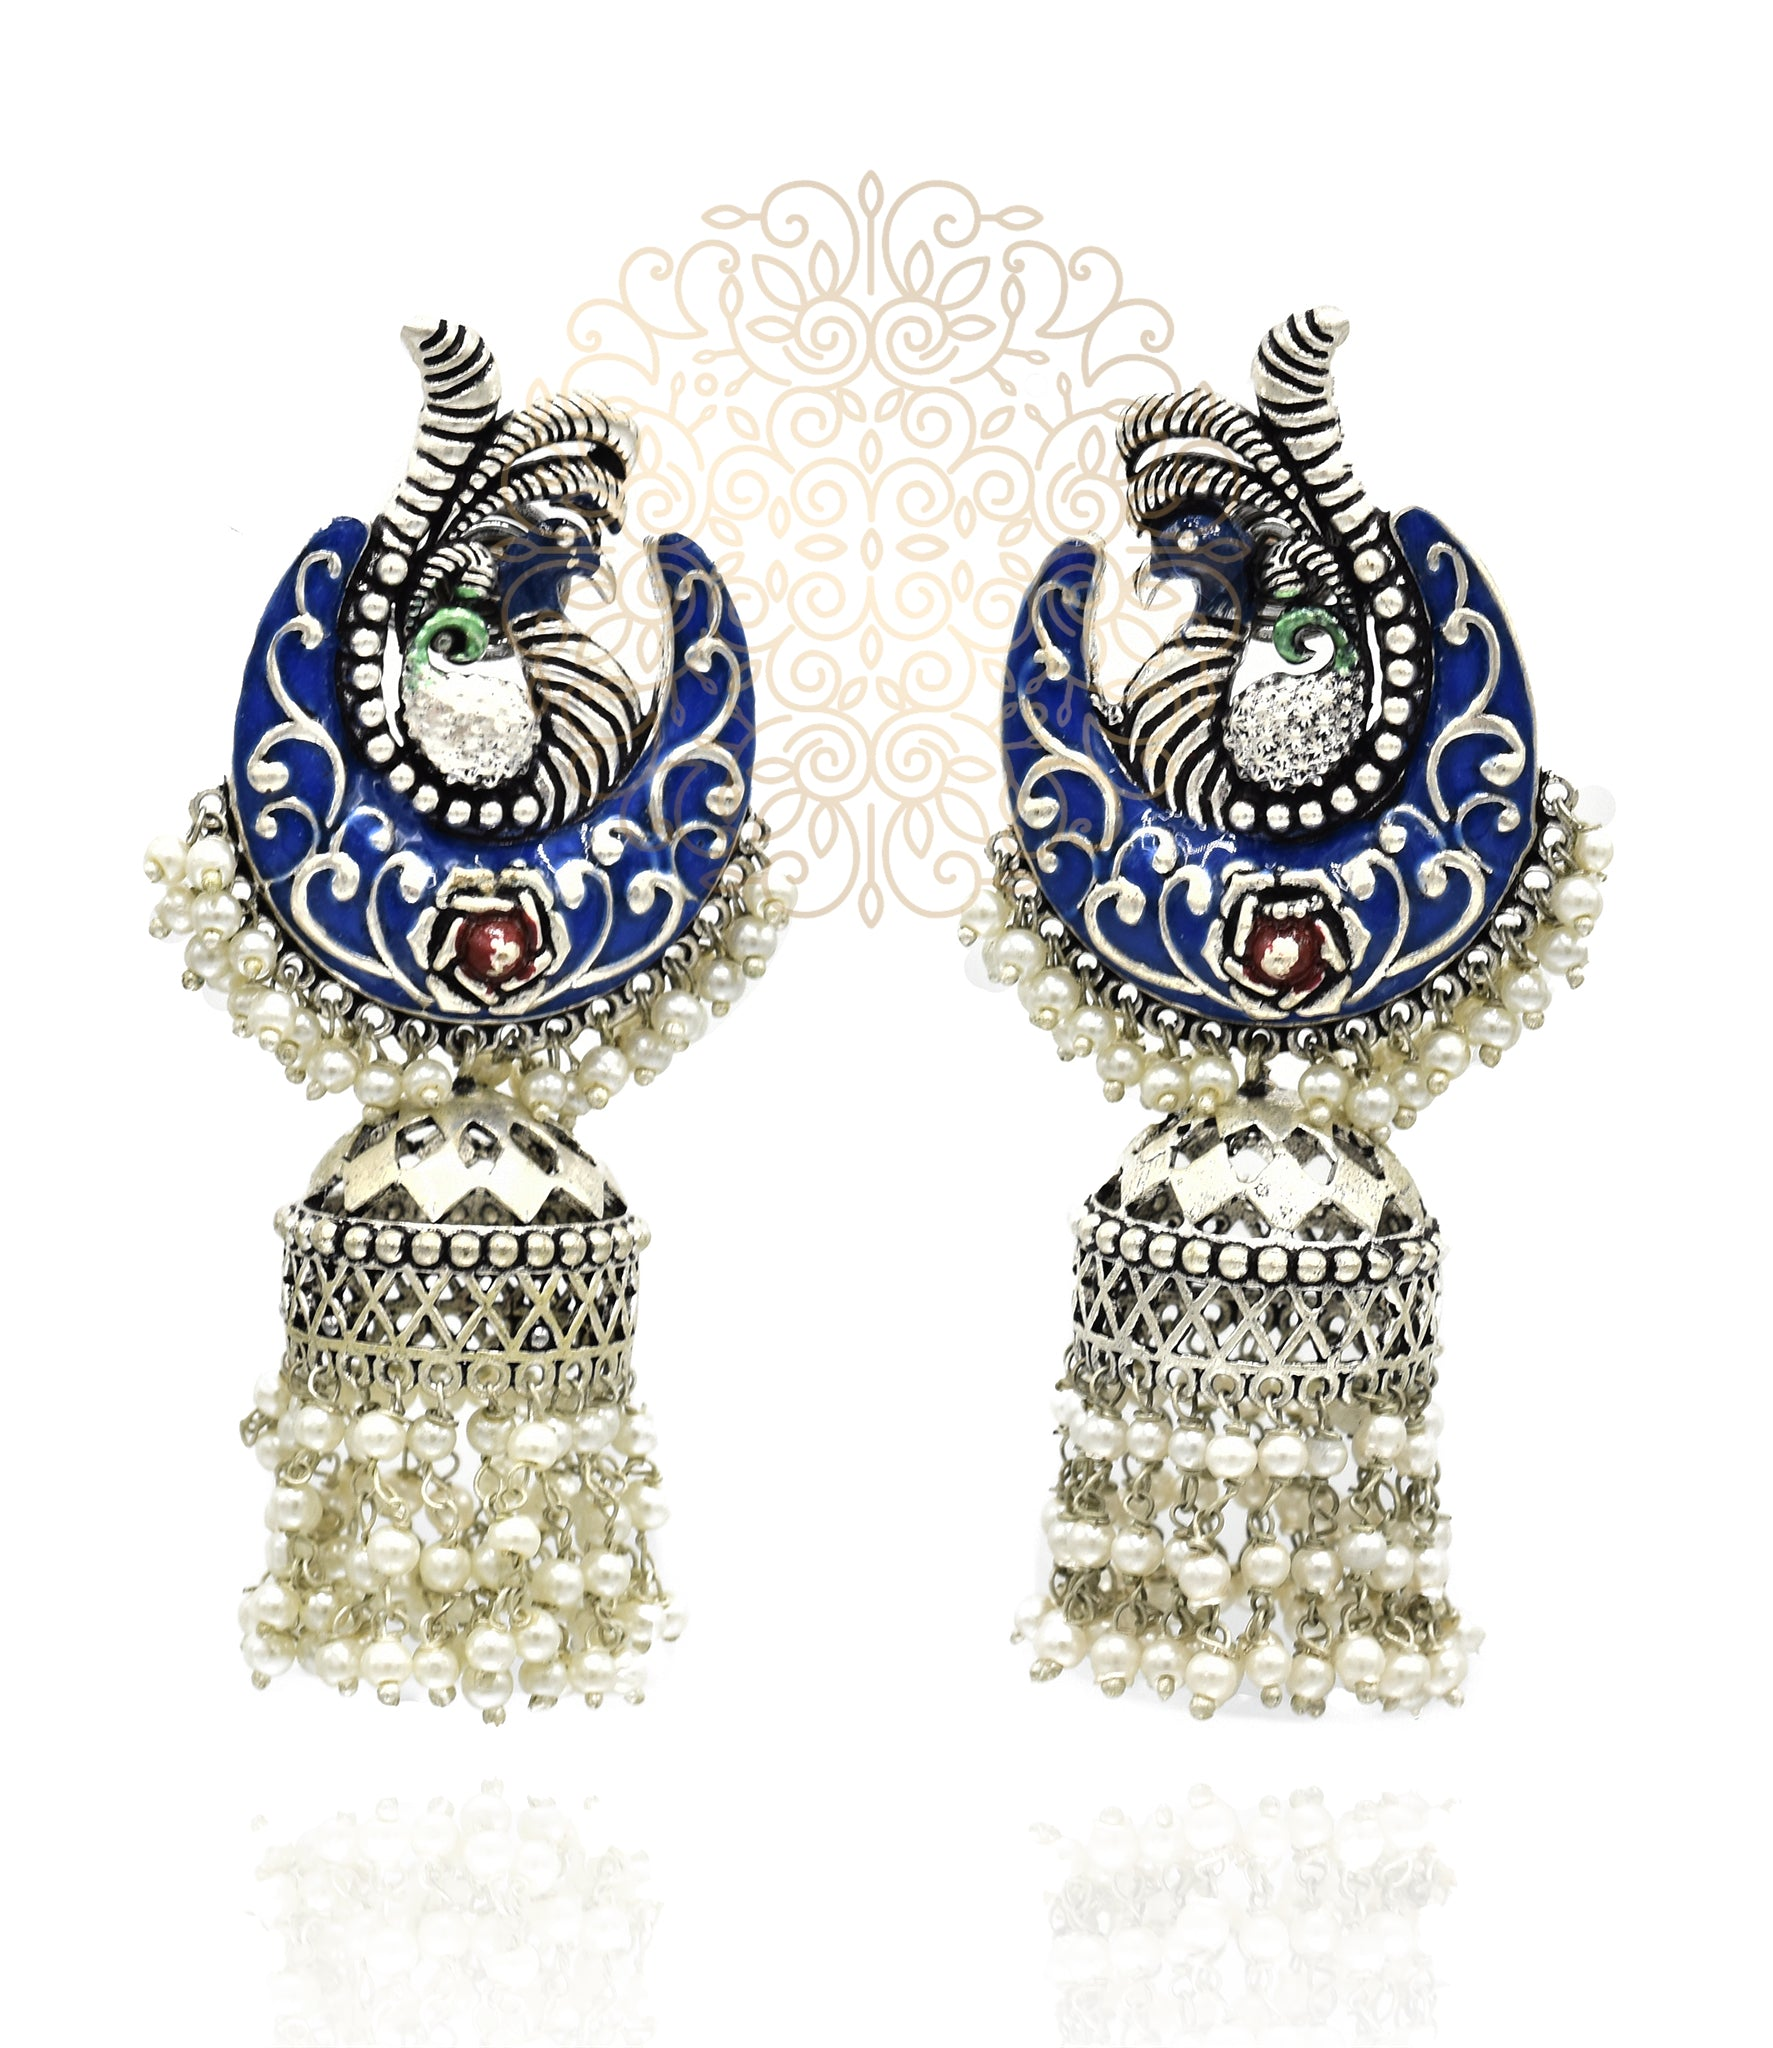 Kruttika Hand Painted Silver Earrings - Blue - The Pashm